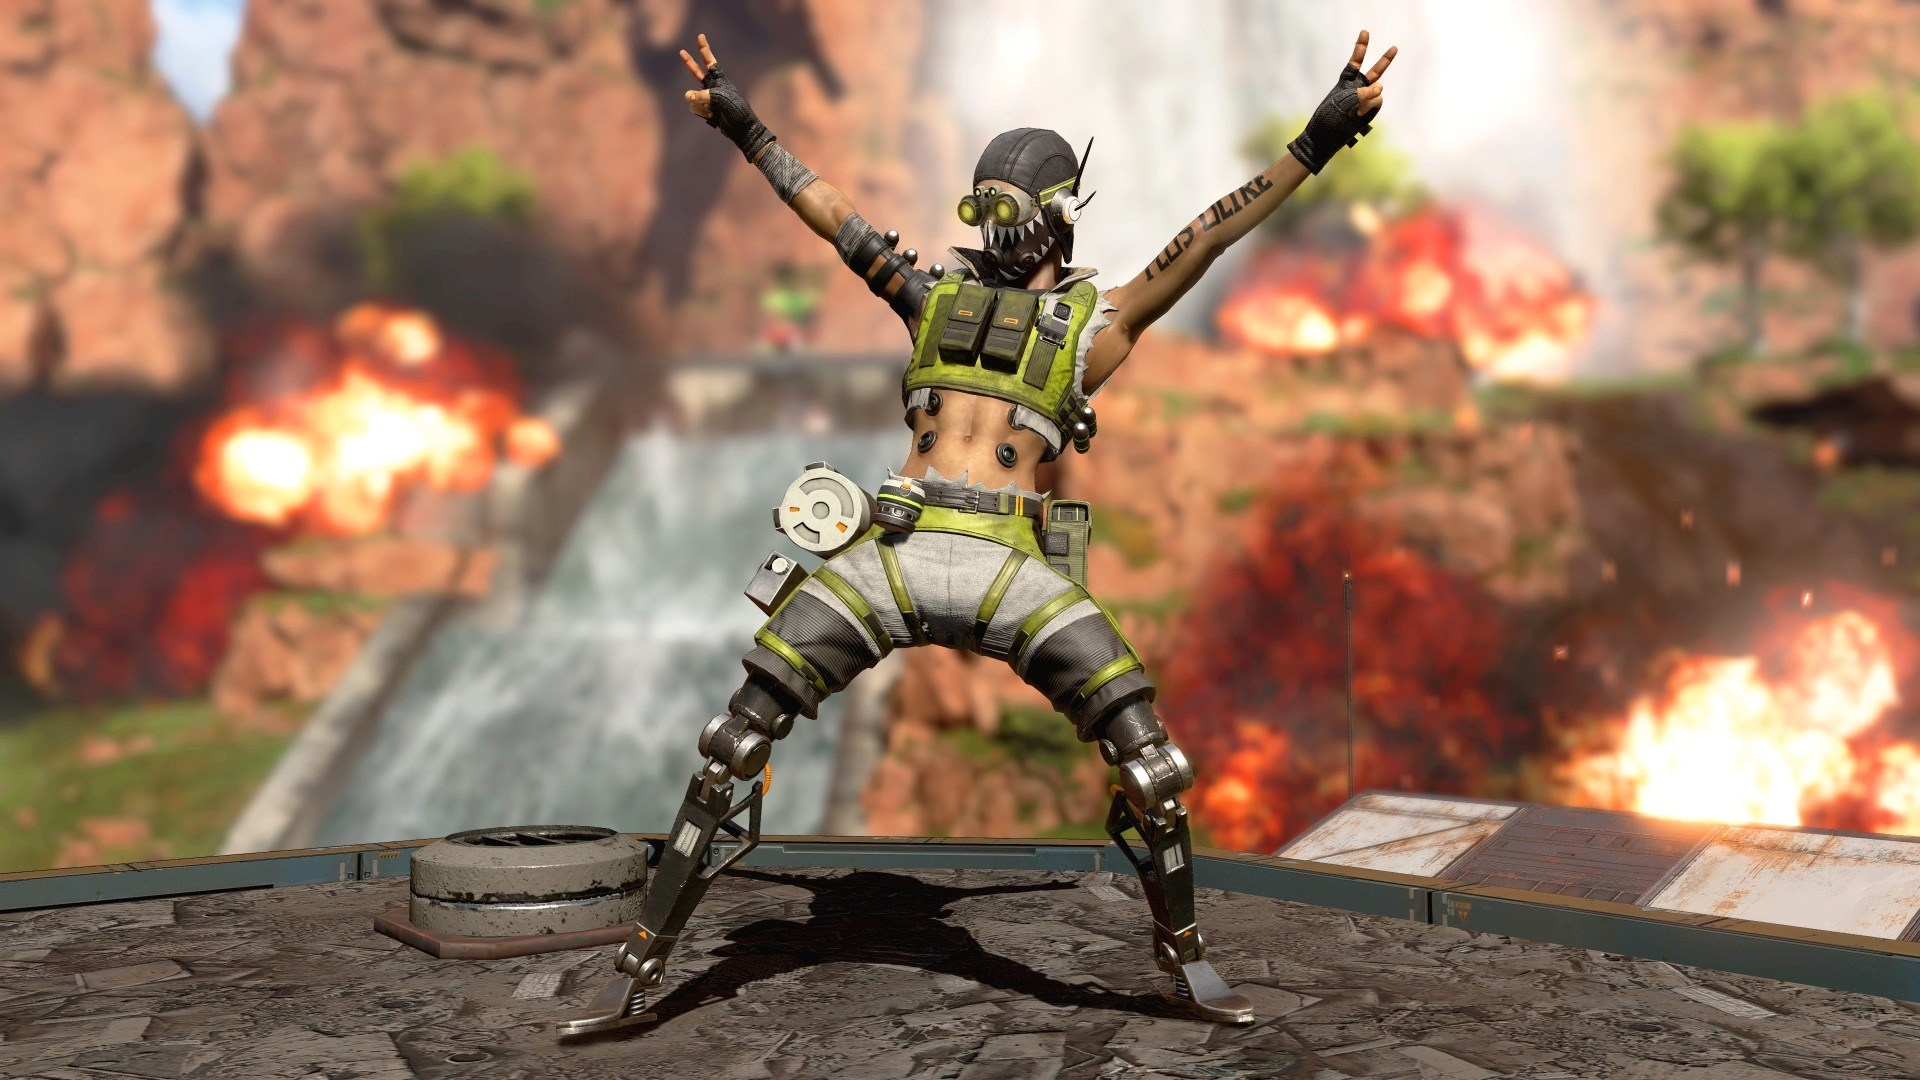 1280x720 Apex Legends Season 1 720p Wallpaper Hd Games 4k